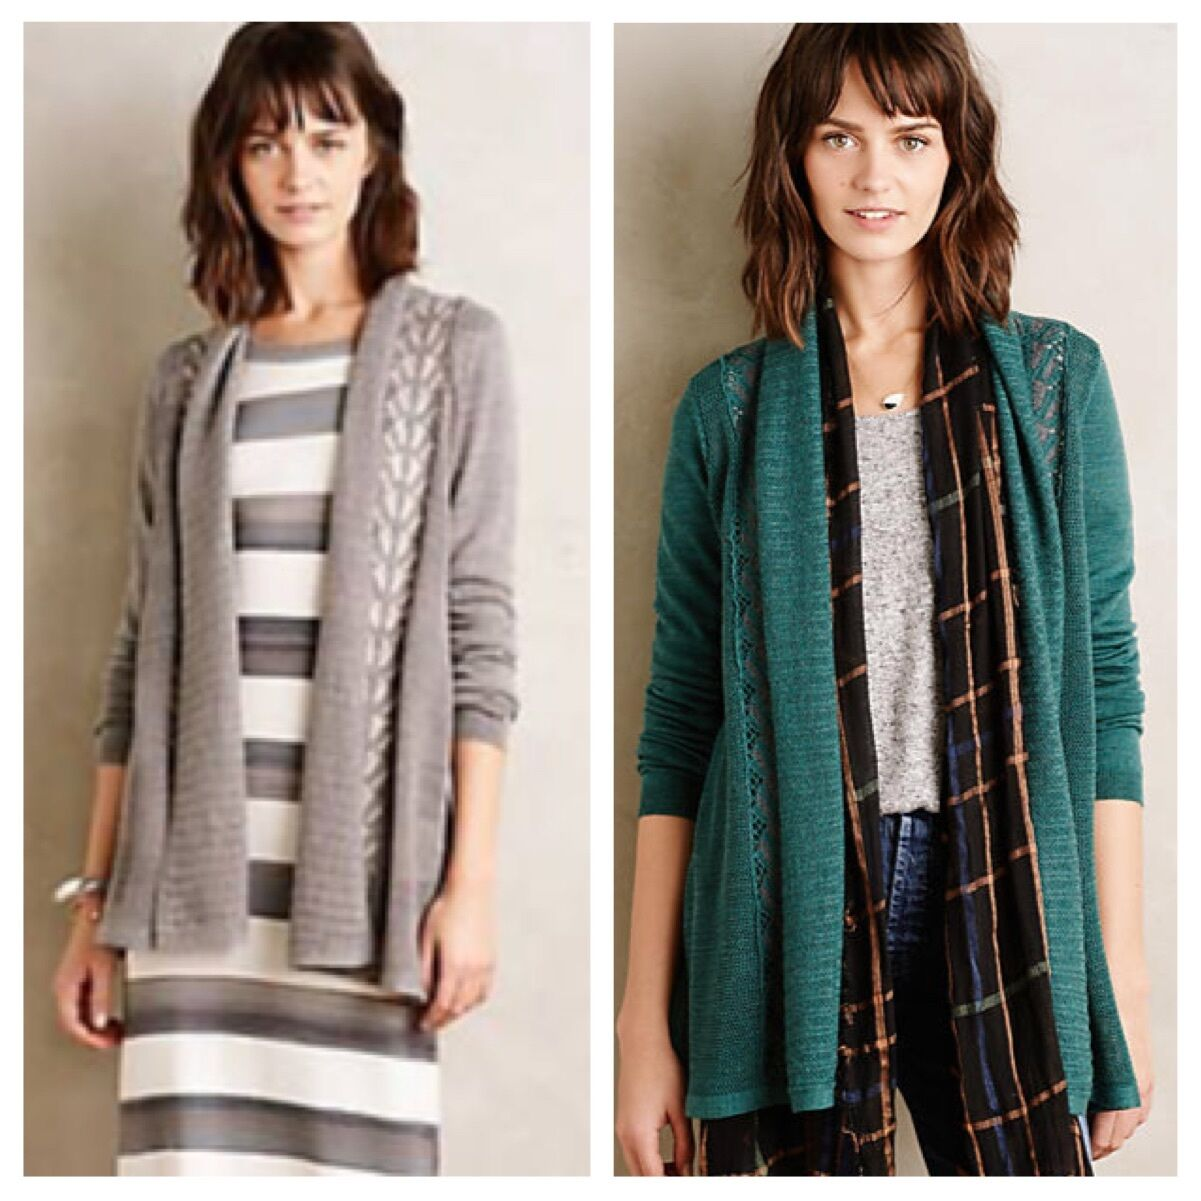 NWT  128 Anthropologie Messina Cardigan Sweater Knitted & Knotted